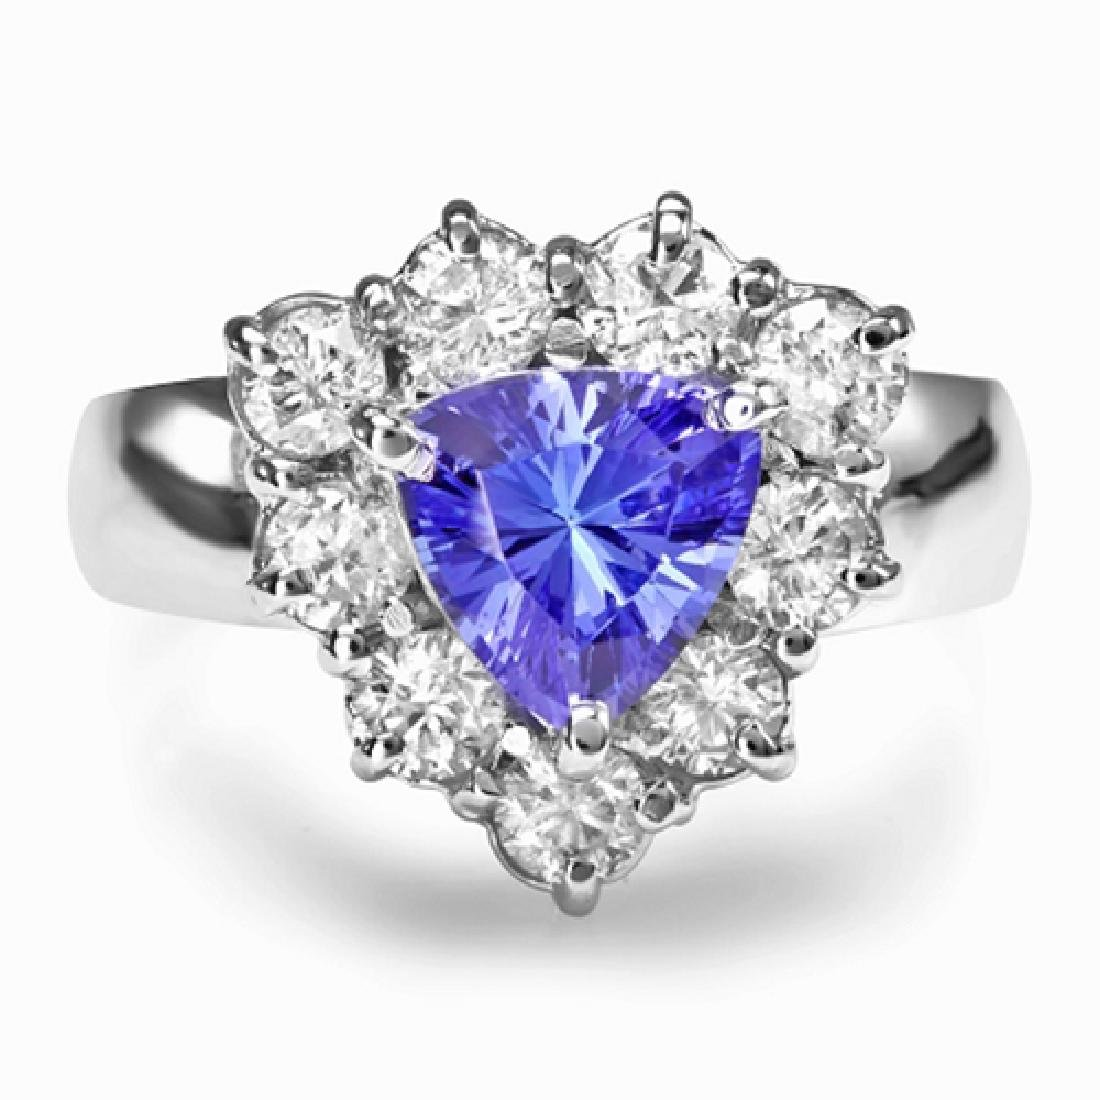 2.40 Carat Natural Tanzanite 14K Solid White Gold